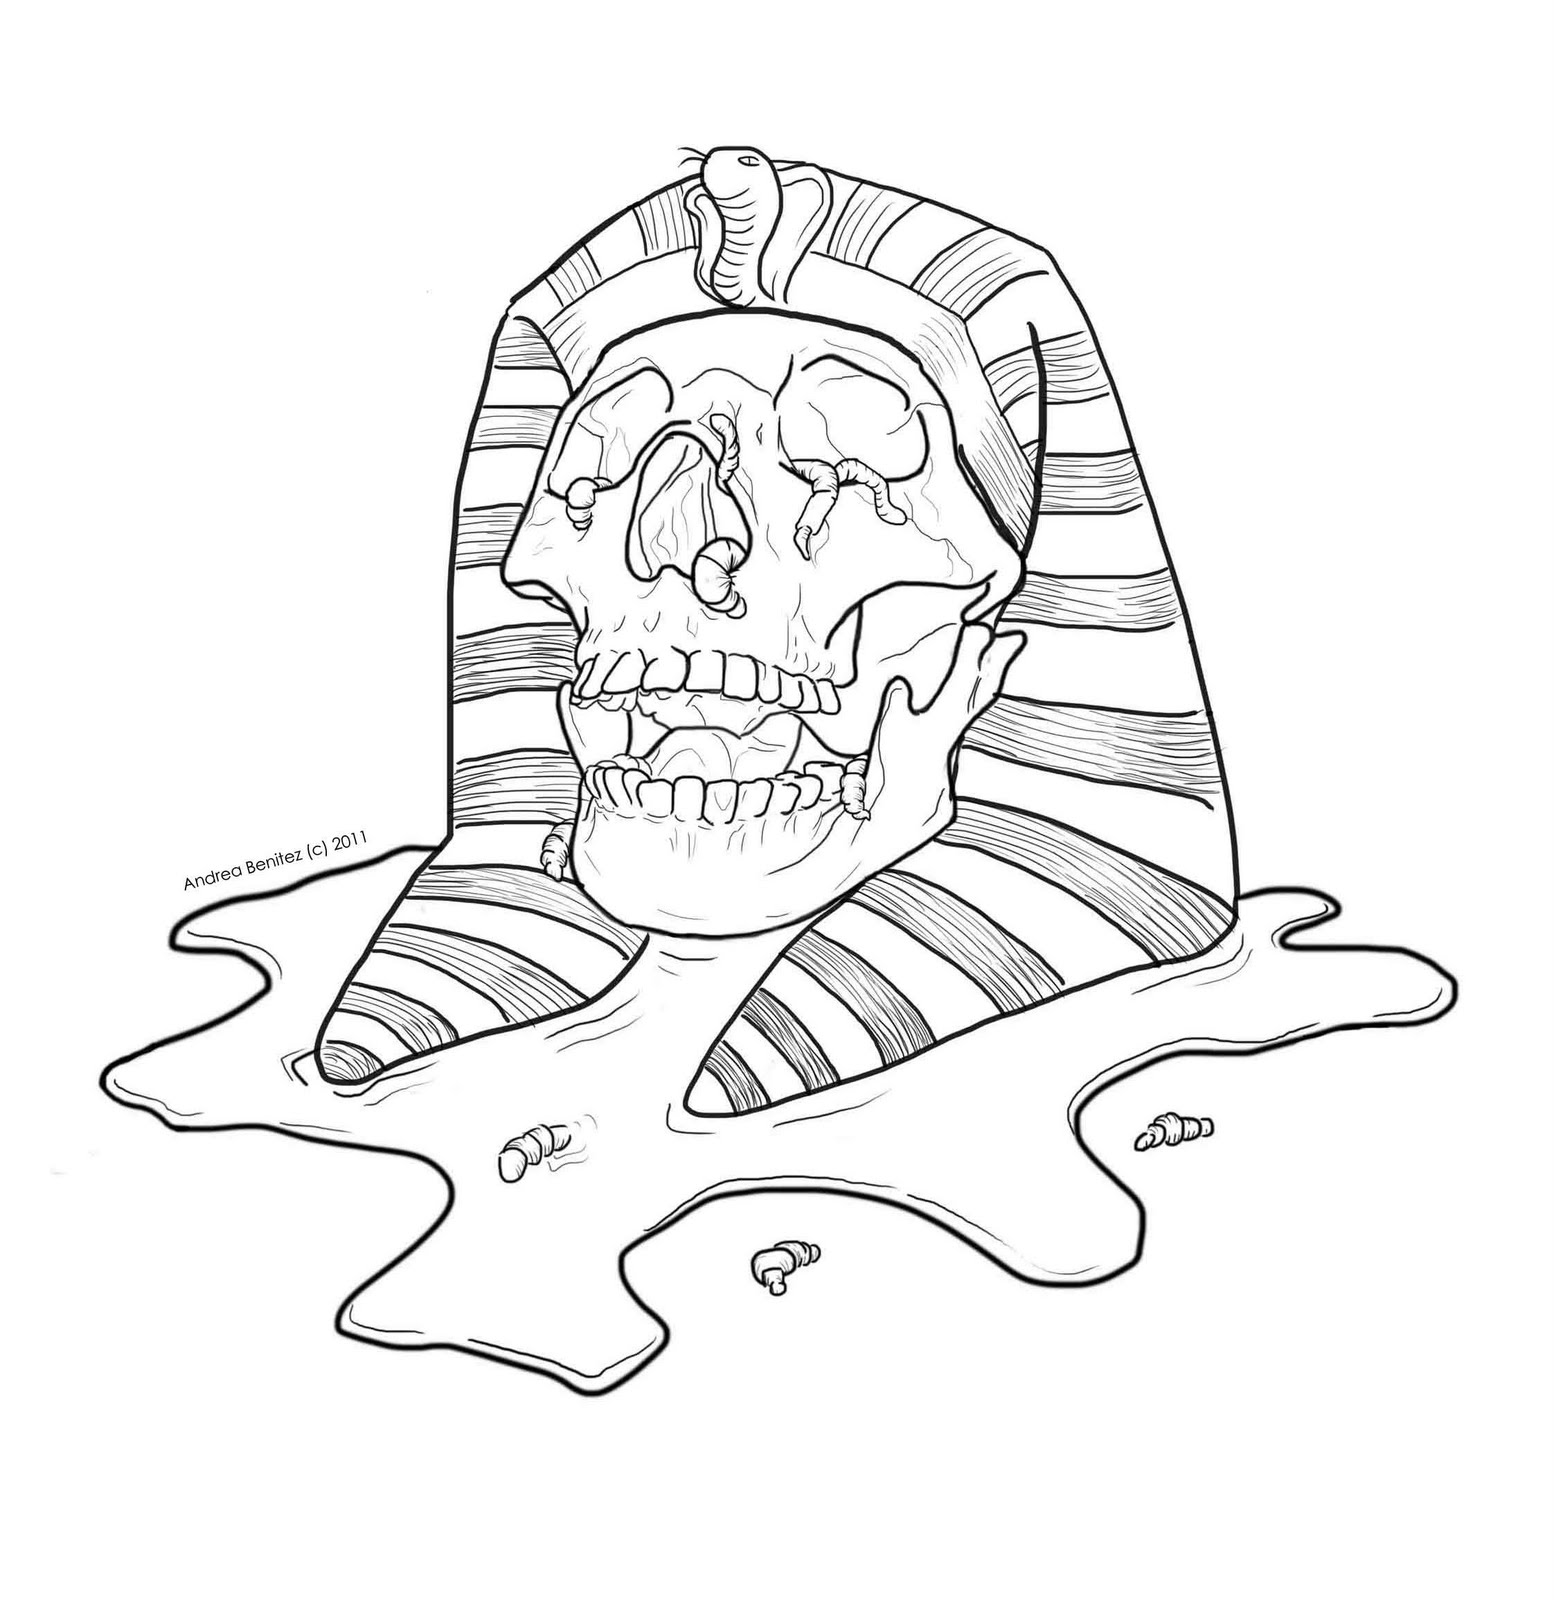 Egyptian Mummy Drawing at GetDrawings.com | Free for personal use ...